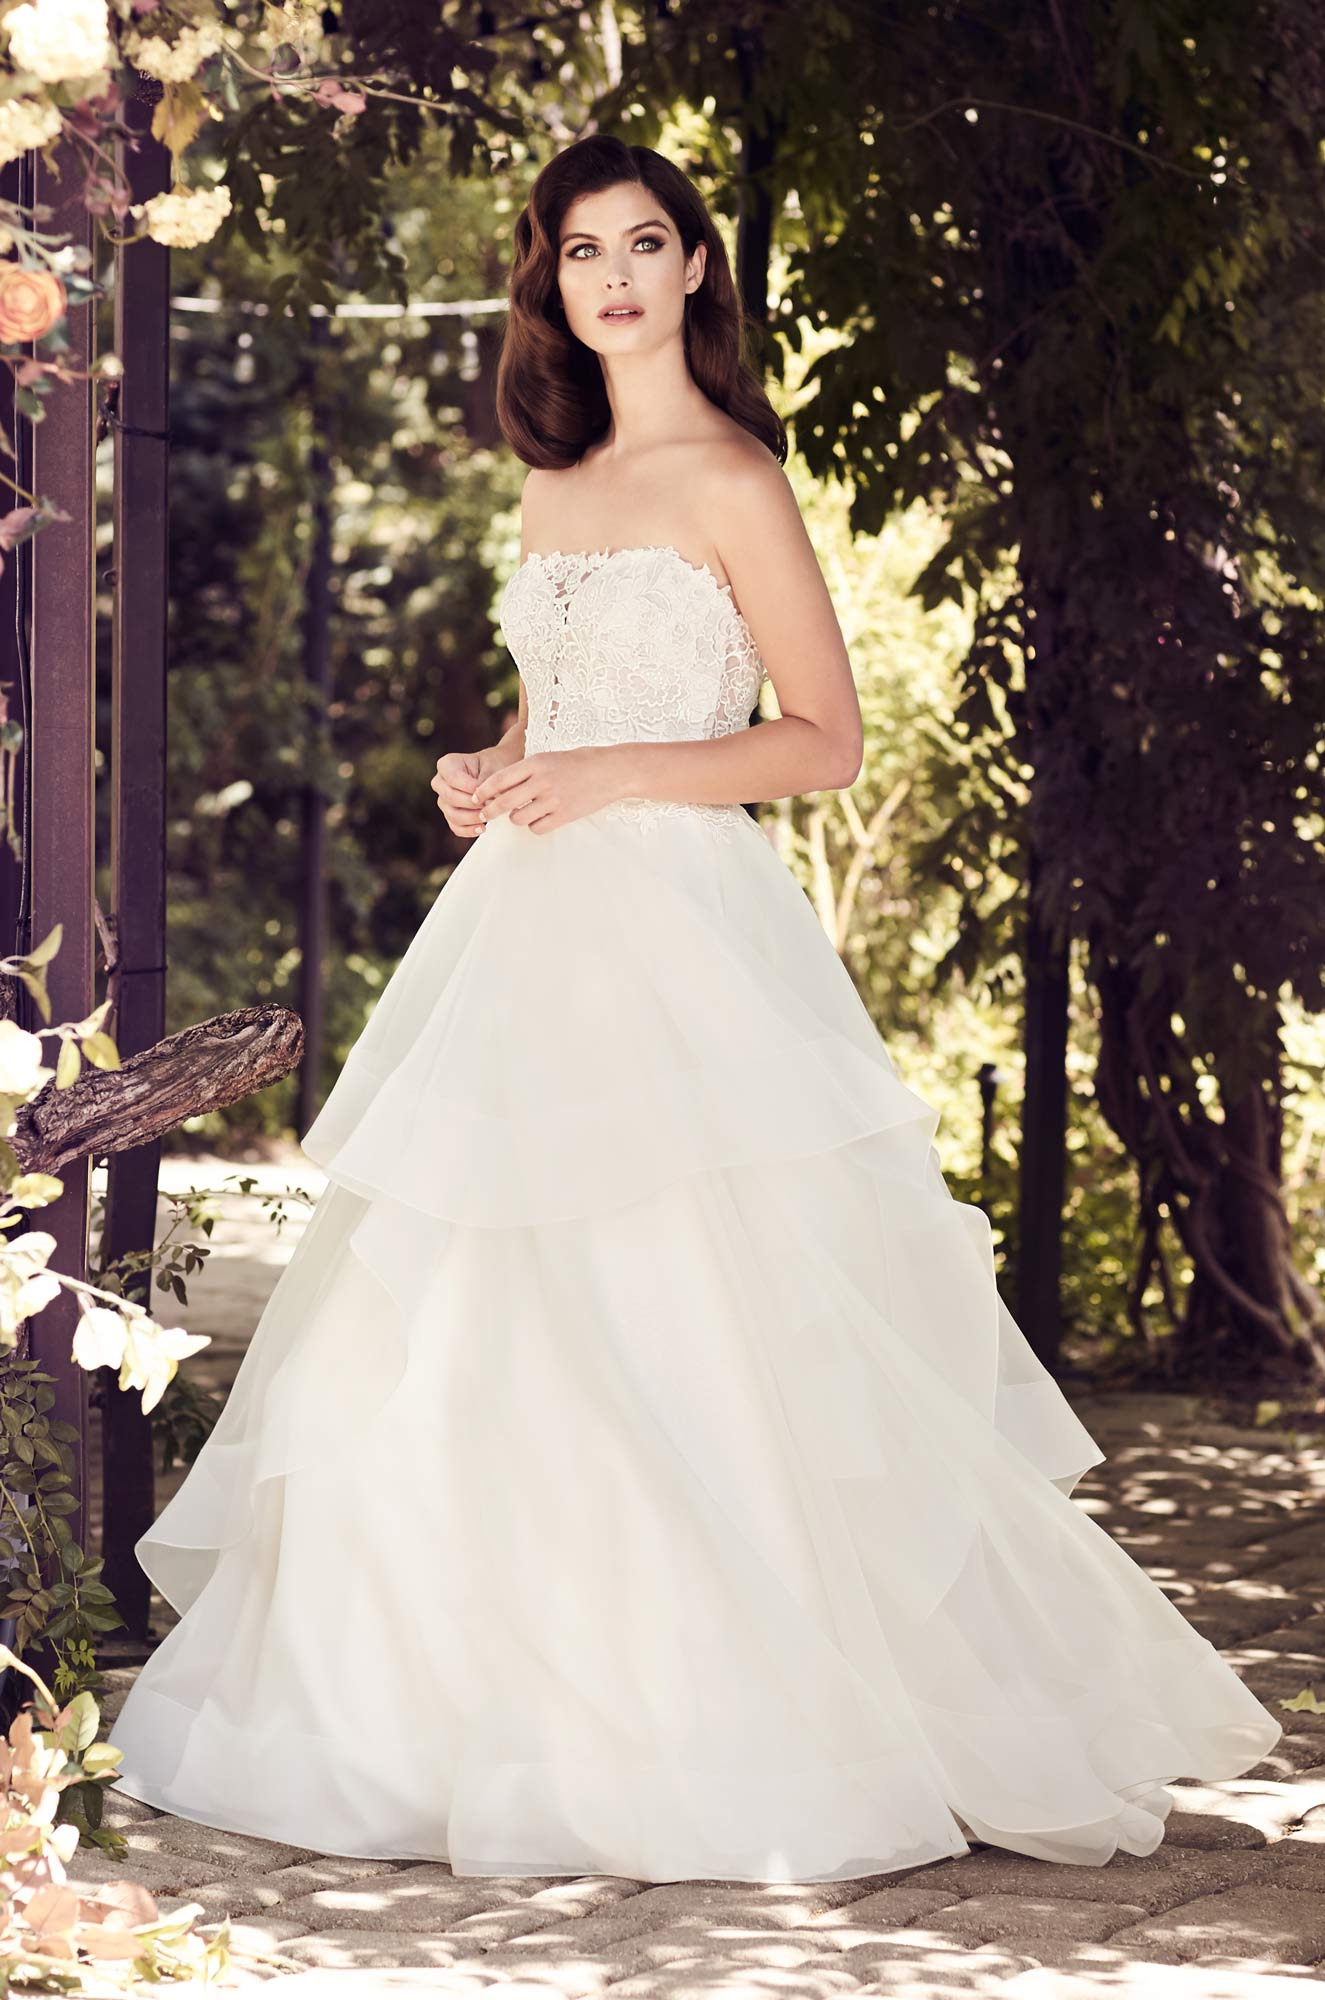 A-Line Two-Tone Lace Wedding Dress - Style #4729 | Paloma Blanca